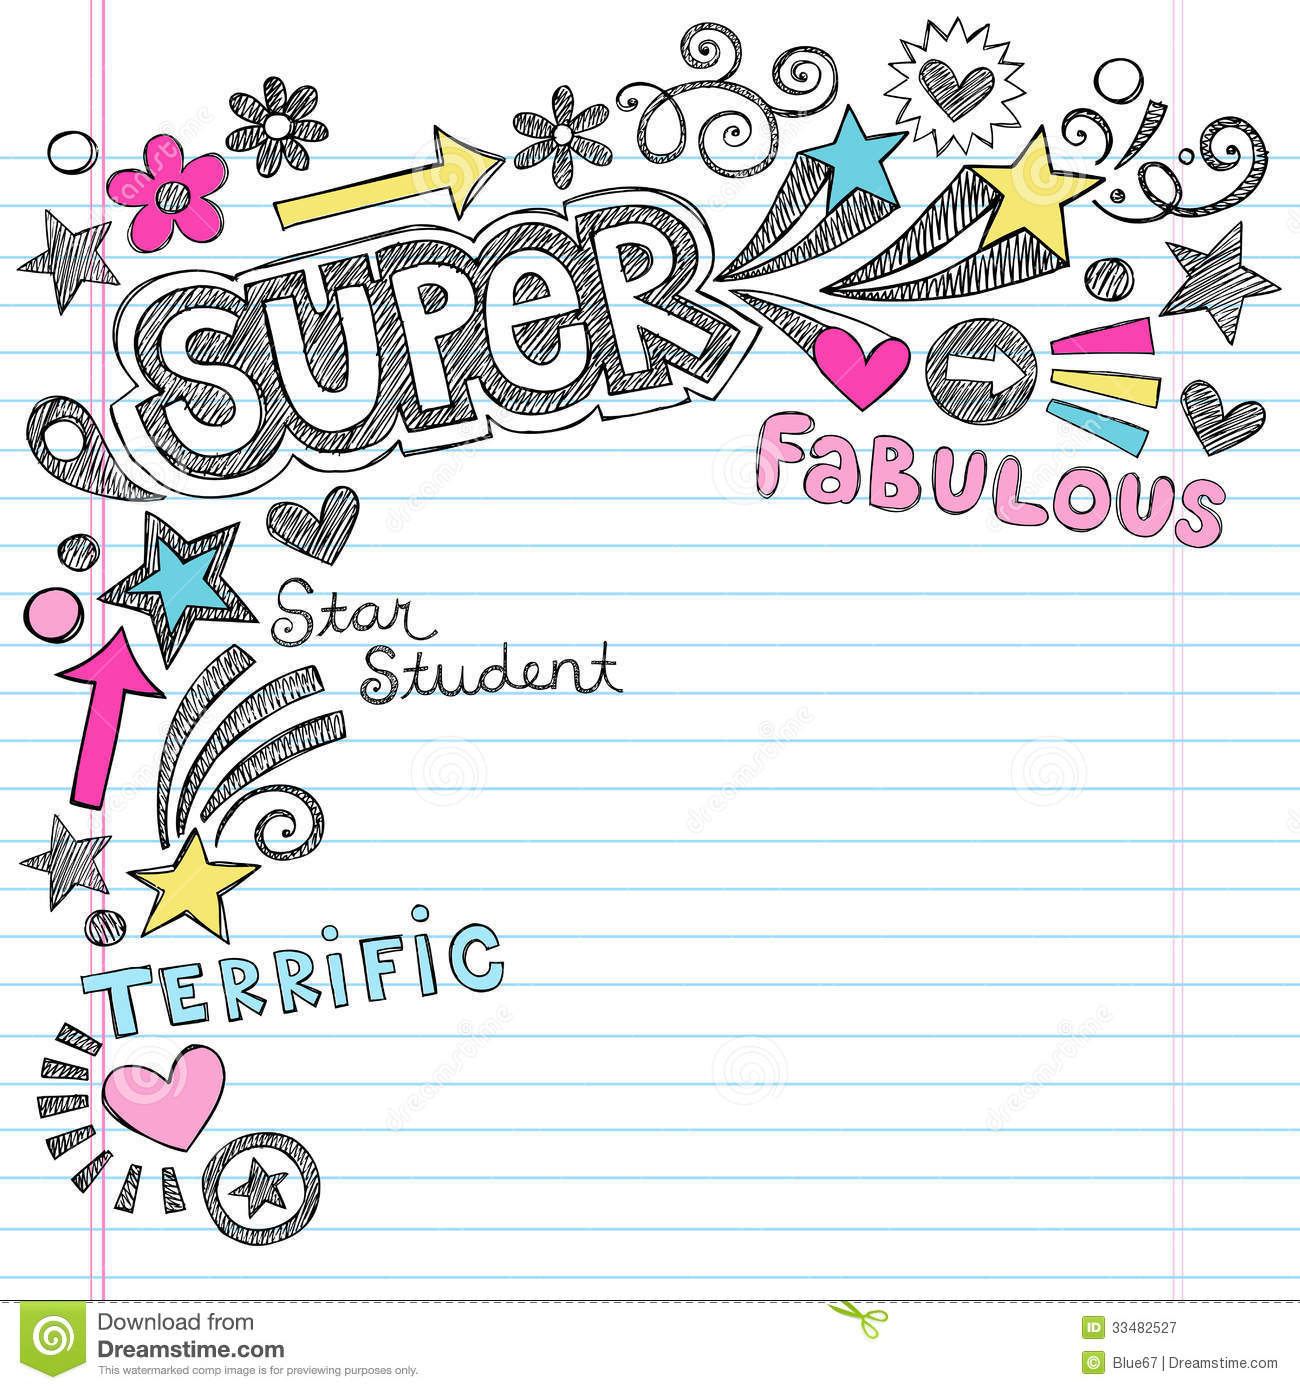 Wallpaper Lined Paper: Super Student Praise Back To School Notebook Doodl Stock